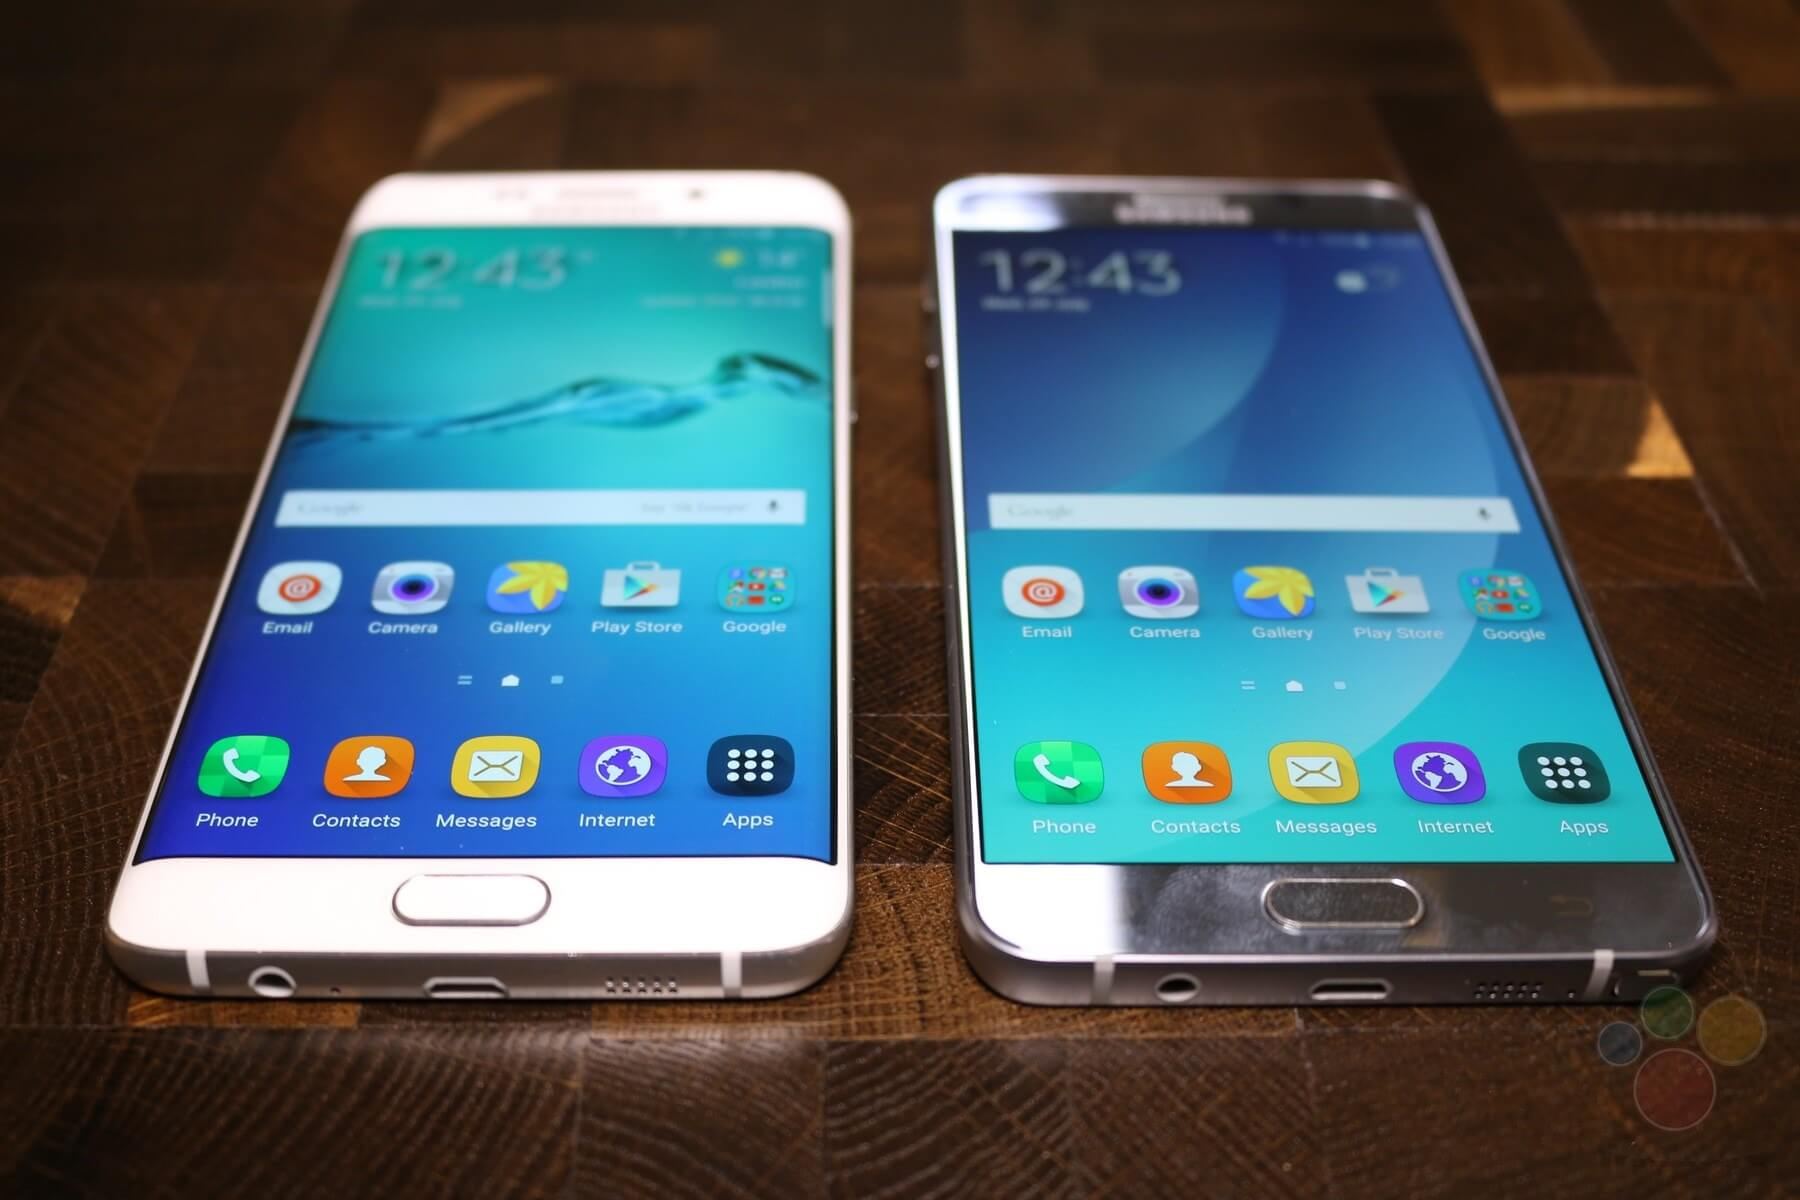 Samsung Galaxy Note 5 Neuauflage Des Erfolgs Phablets Alle Smartphone Hands On